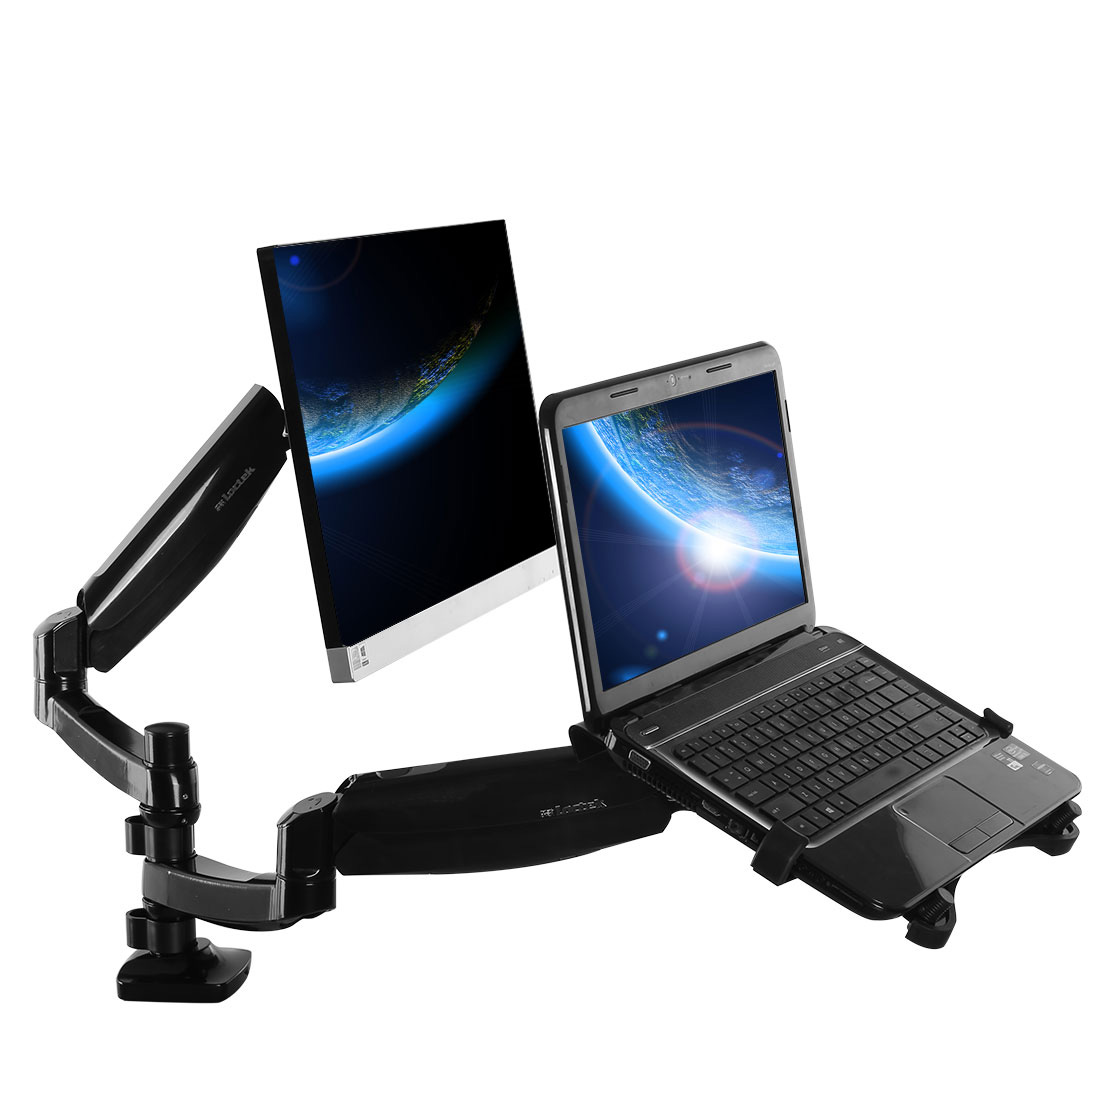 loctek dual arm monitor laptop mount d5dl loctek ergonomic. Black Bedroom Furniture Sets. Home Design Ideas